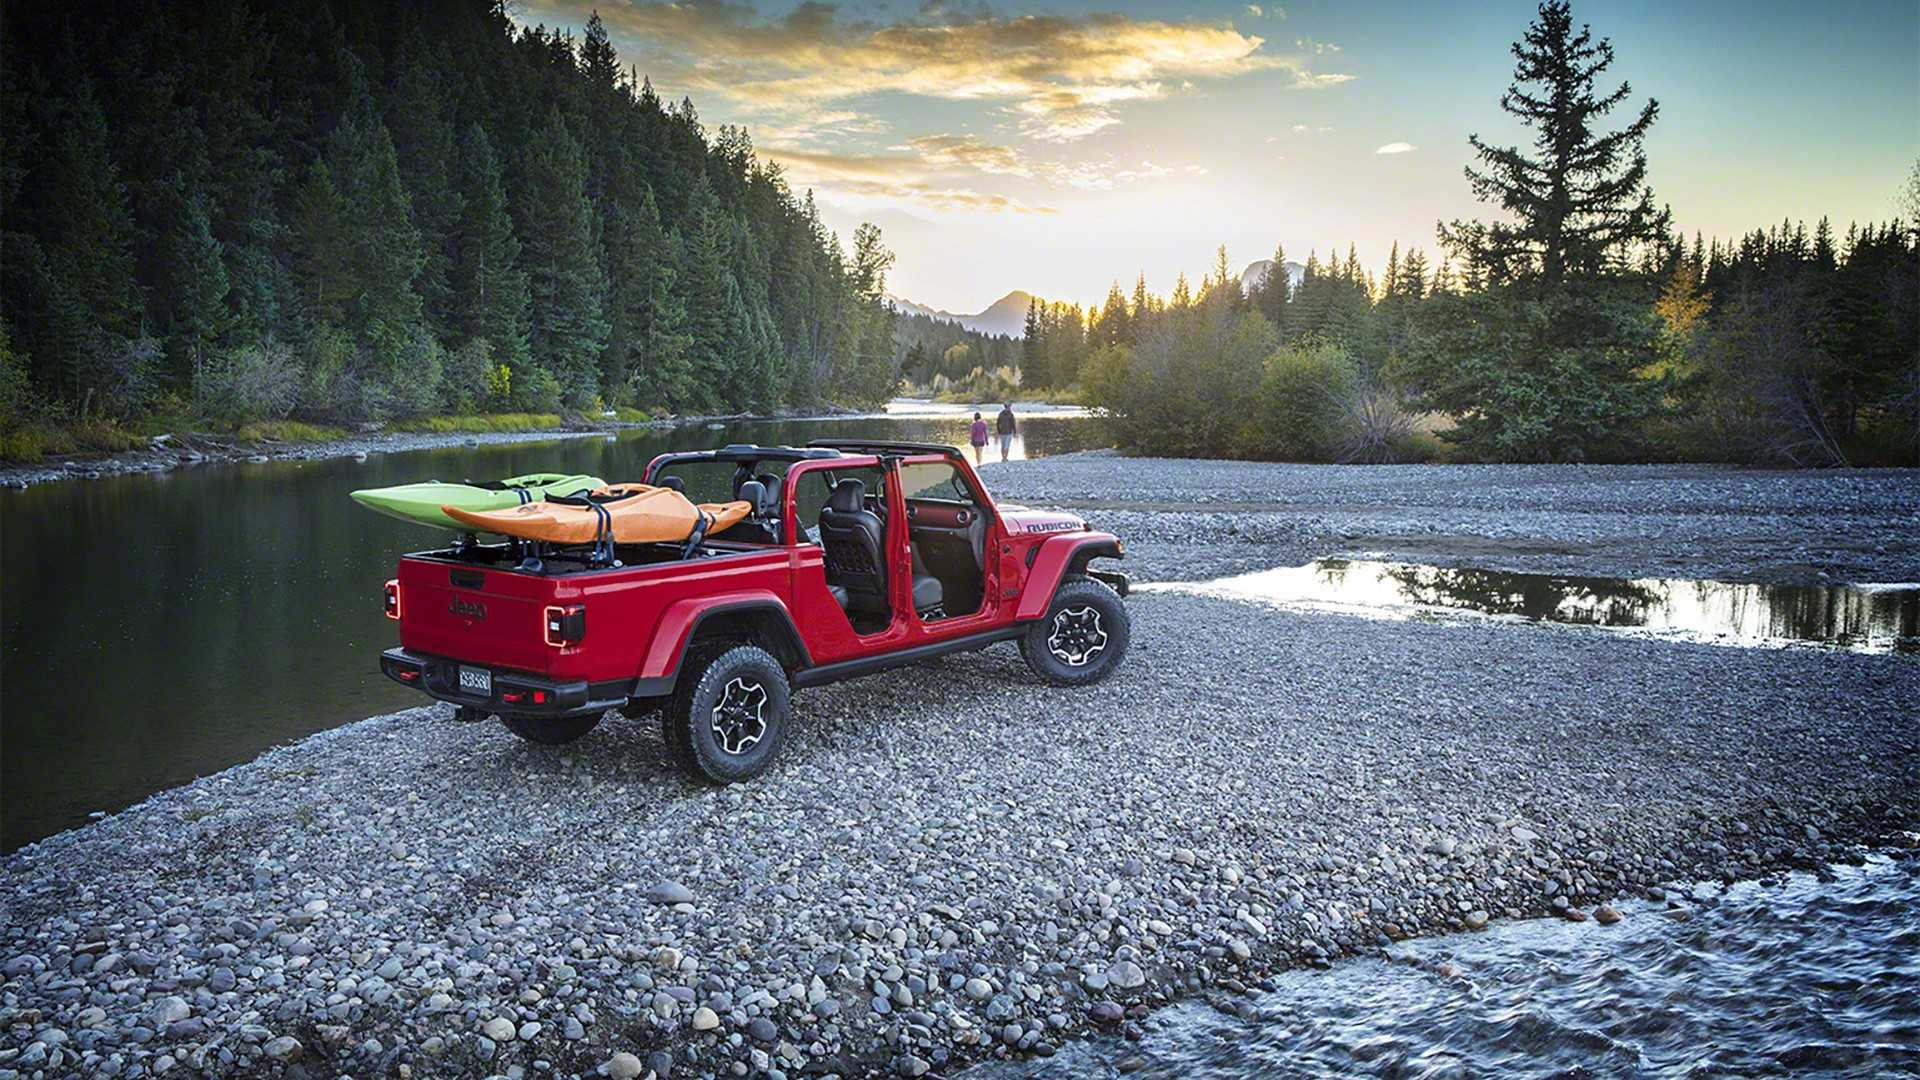 What Is The Towing Capacity Of A Jeep Wrangler >> 2020 Jeep Gladiator Goes Official With Best-In-Class Towing Capacity - autoevolution